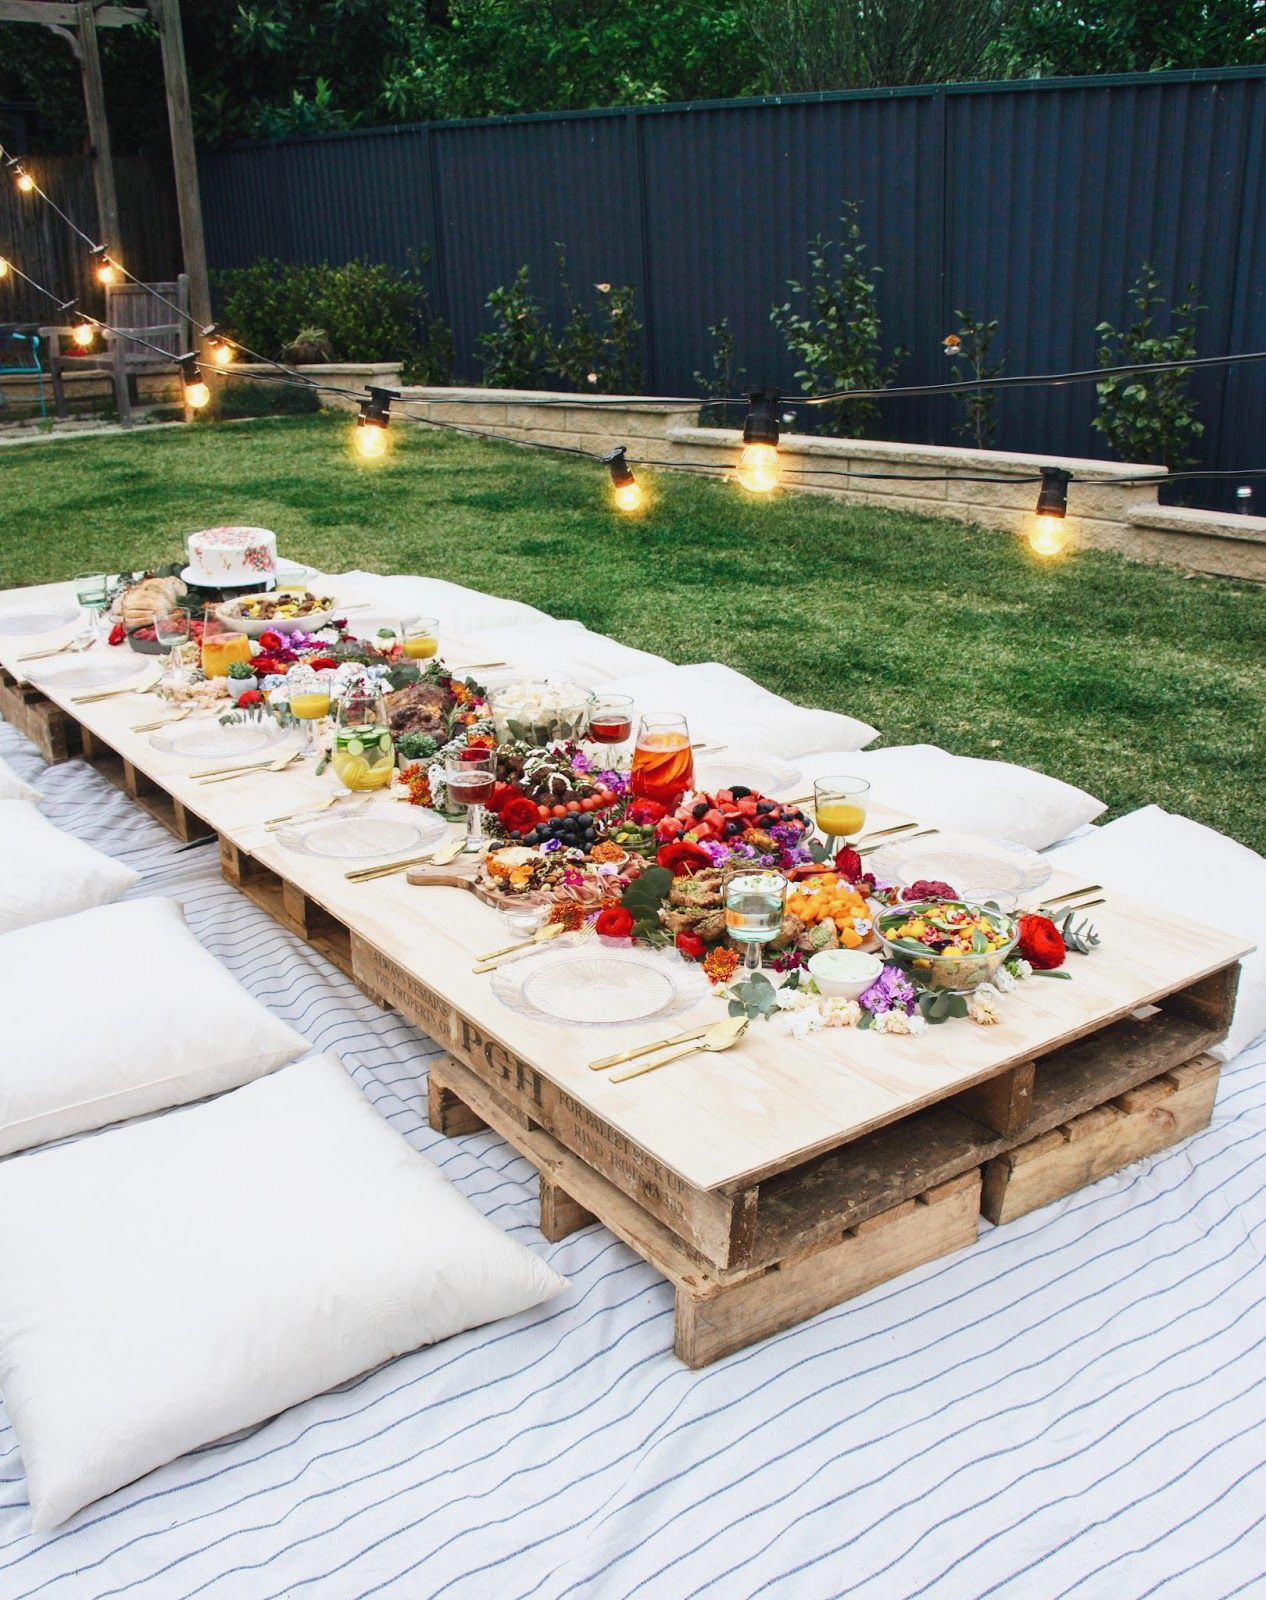 Simple Backyard Birthday Party Ideas For Adults Home Design Planning within Backyard Birthday Party Ideas For Adults